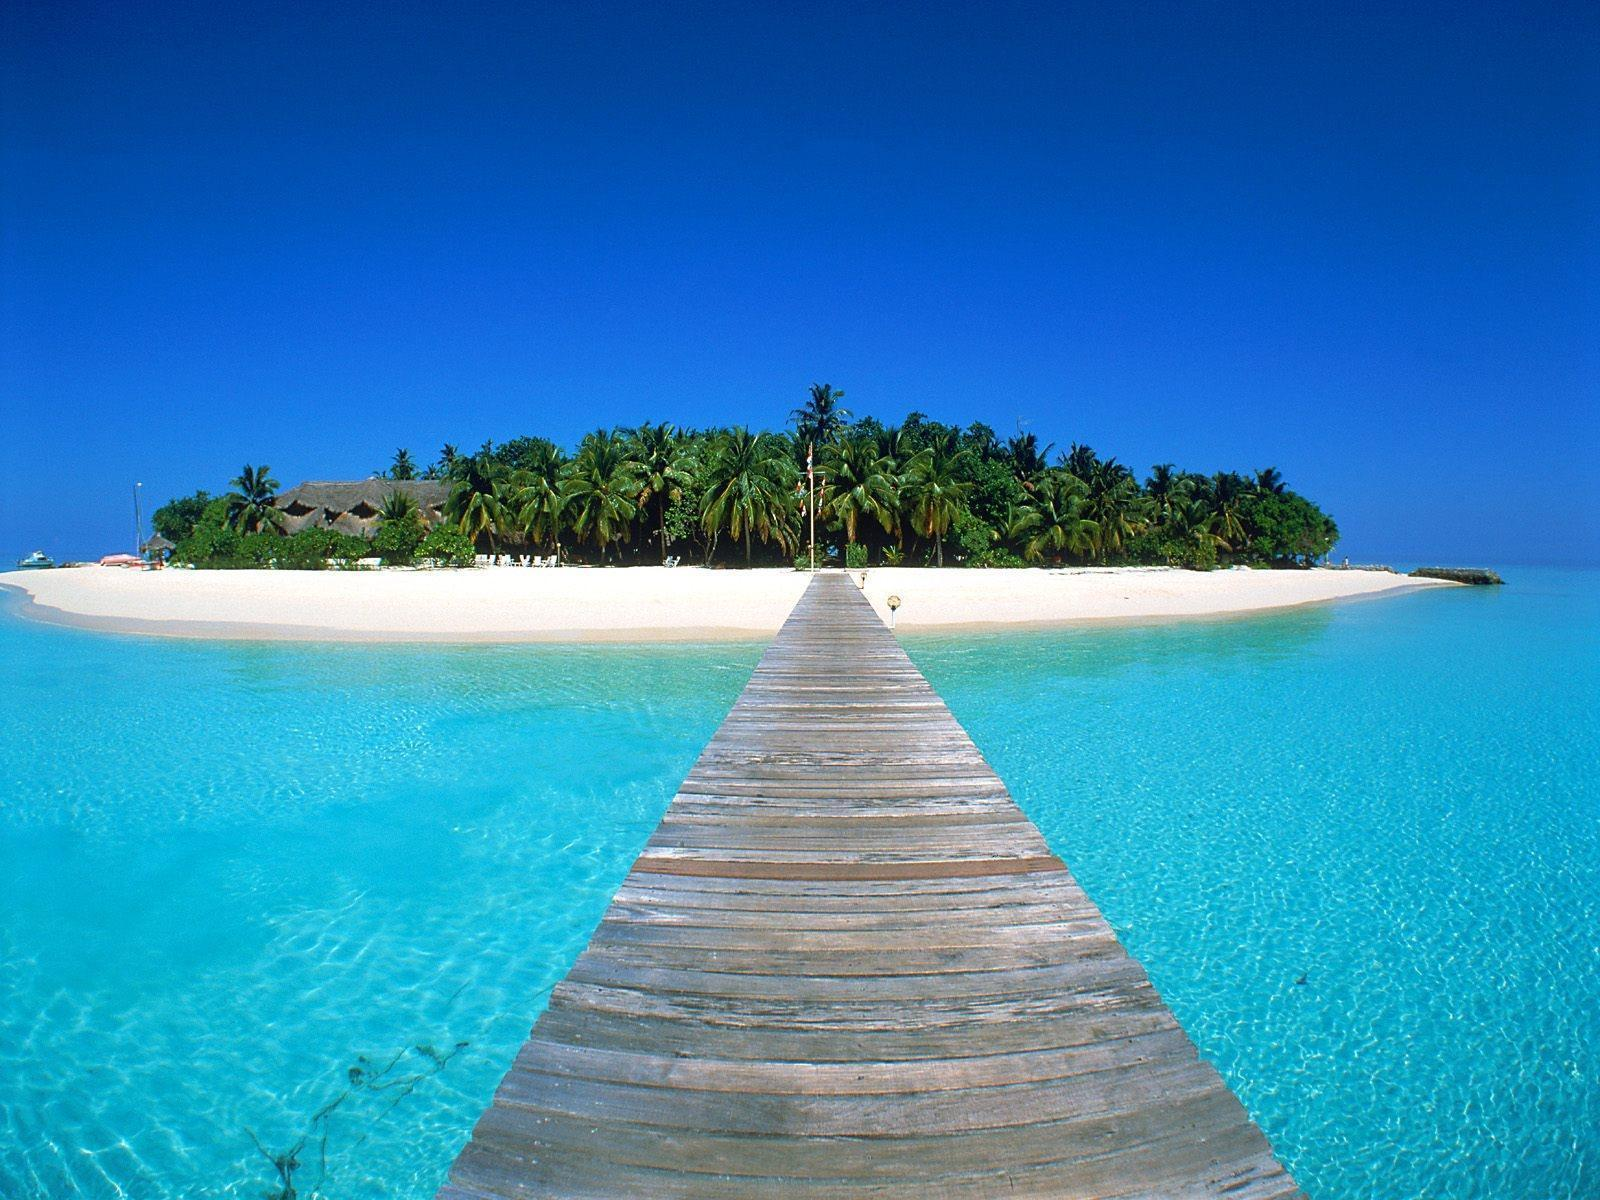 Tropical Wallpapers k Android Apps on Google Play